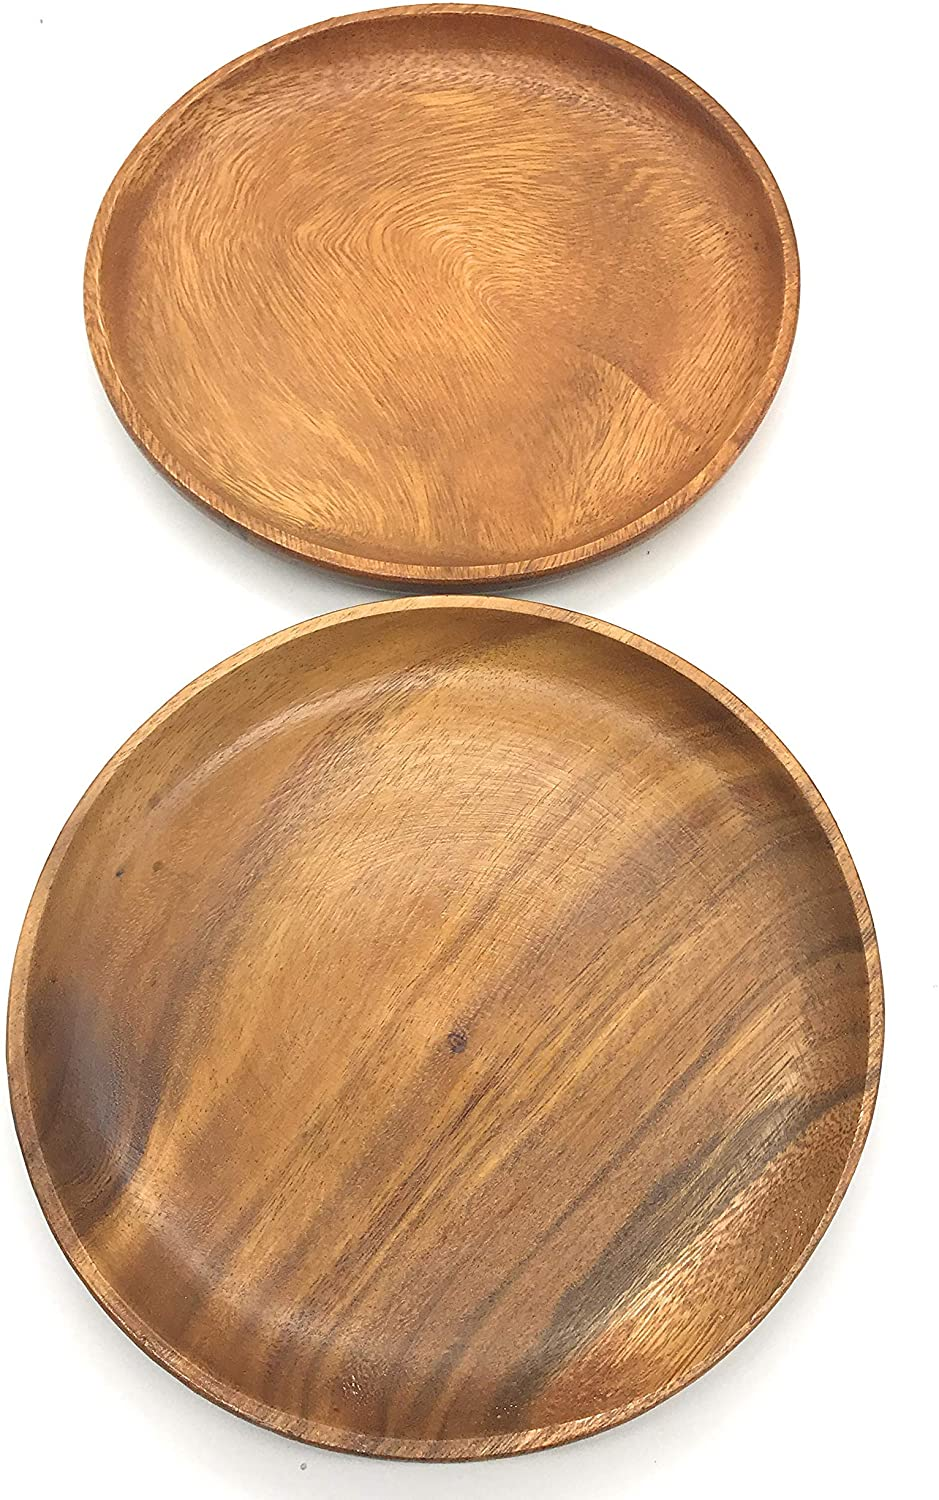 SDS Acacia Wood Plates Wooden Round Serving Tray Set of 2 Round Appetizer Plates 10 Inch